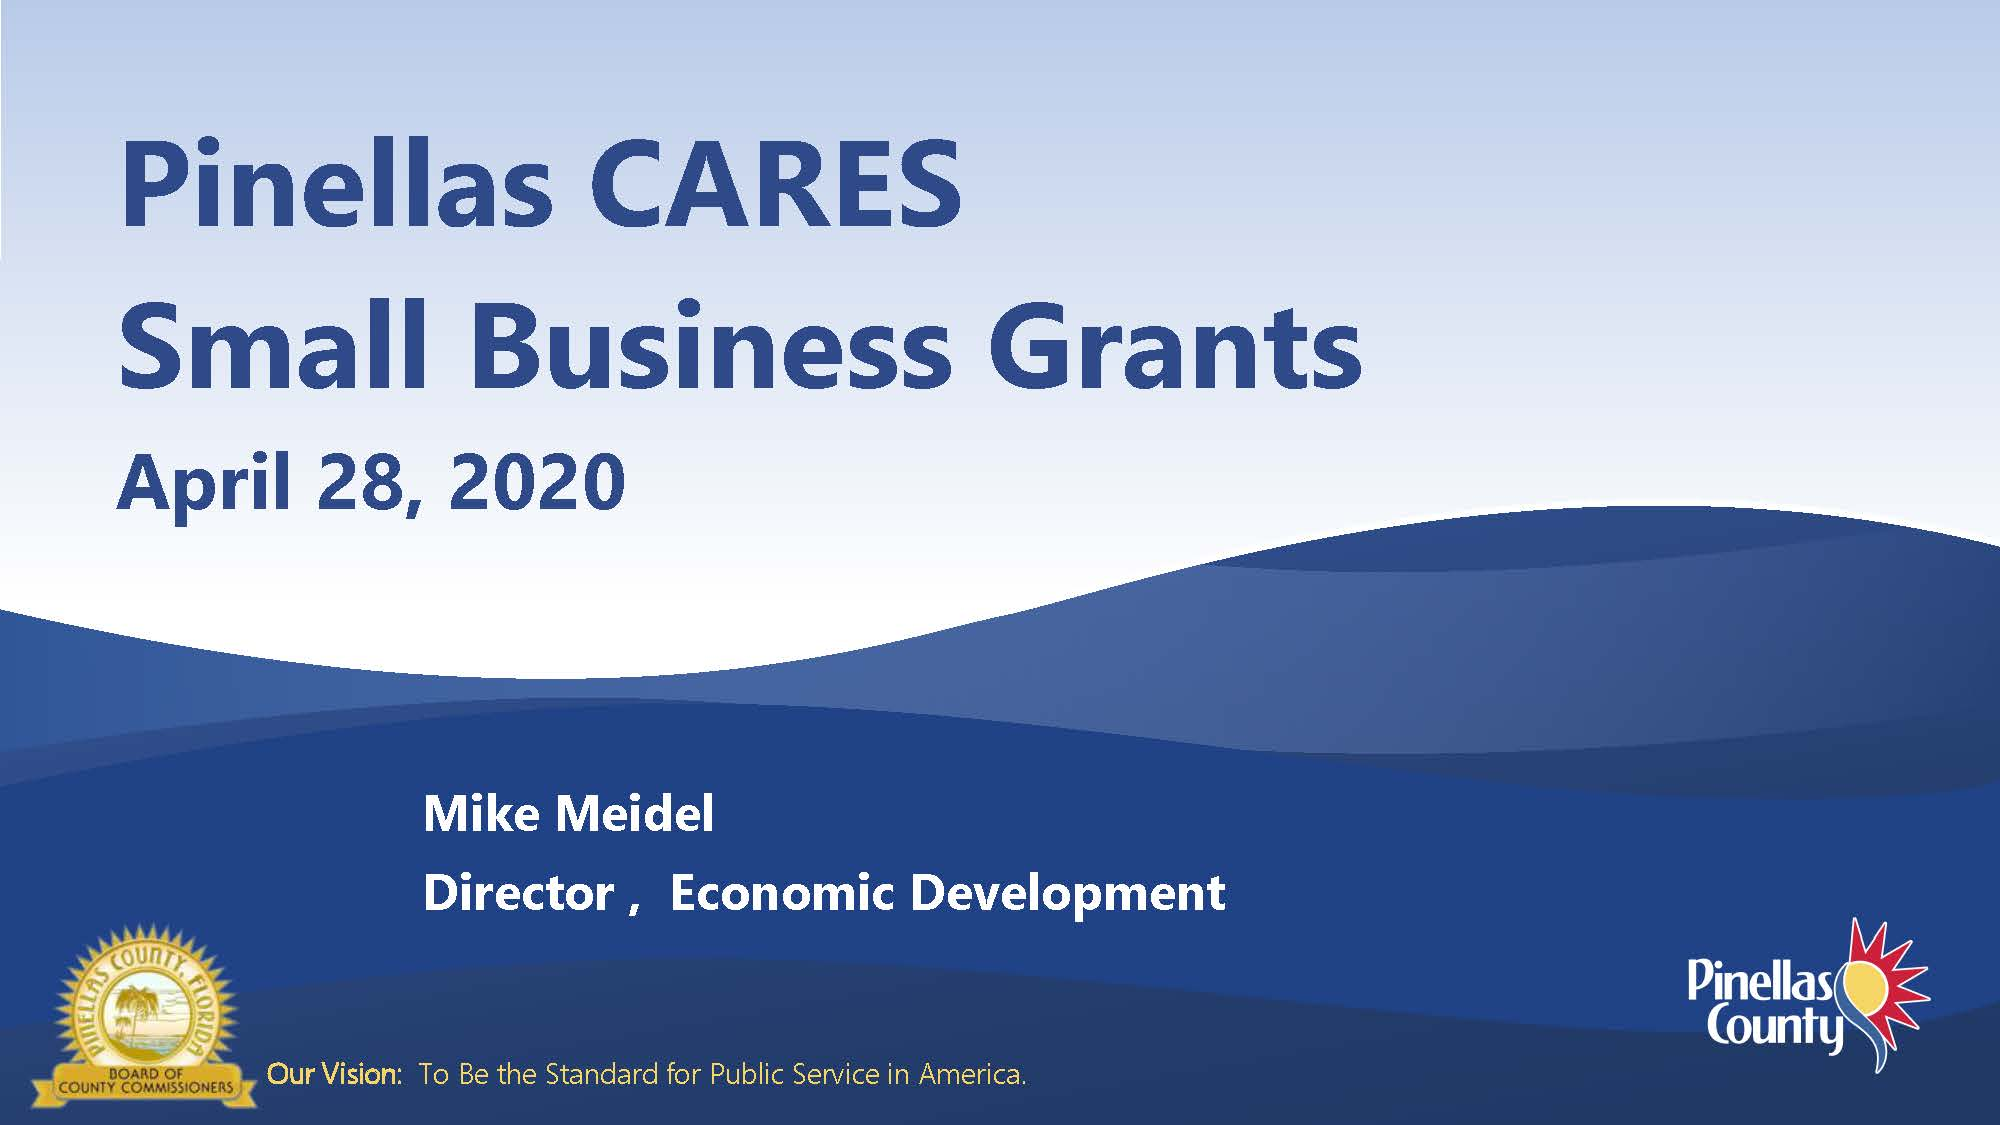 Pinellas CARES Small Business Grants 4-28-20 Mike Meidel, Director, Economic Development